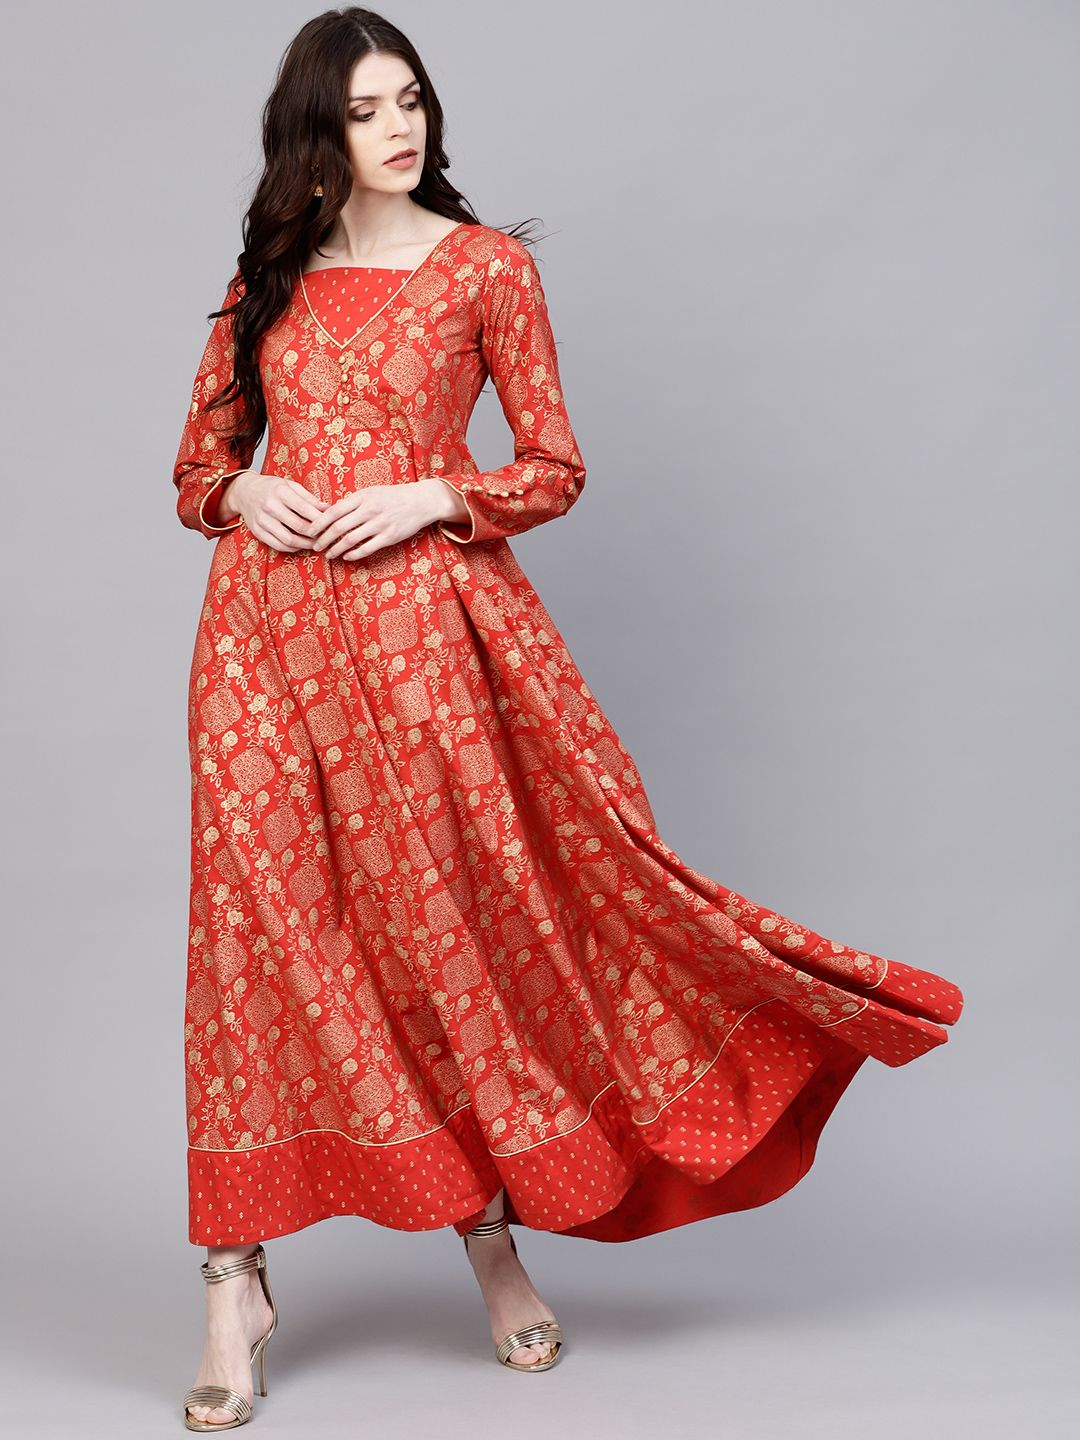 e8006eb2779 I love this AKS Women Rust Red   Golden Printed Maxi Dress - Dresses for  Women 7584990